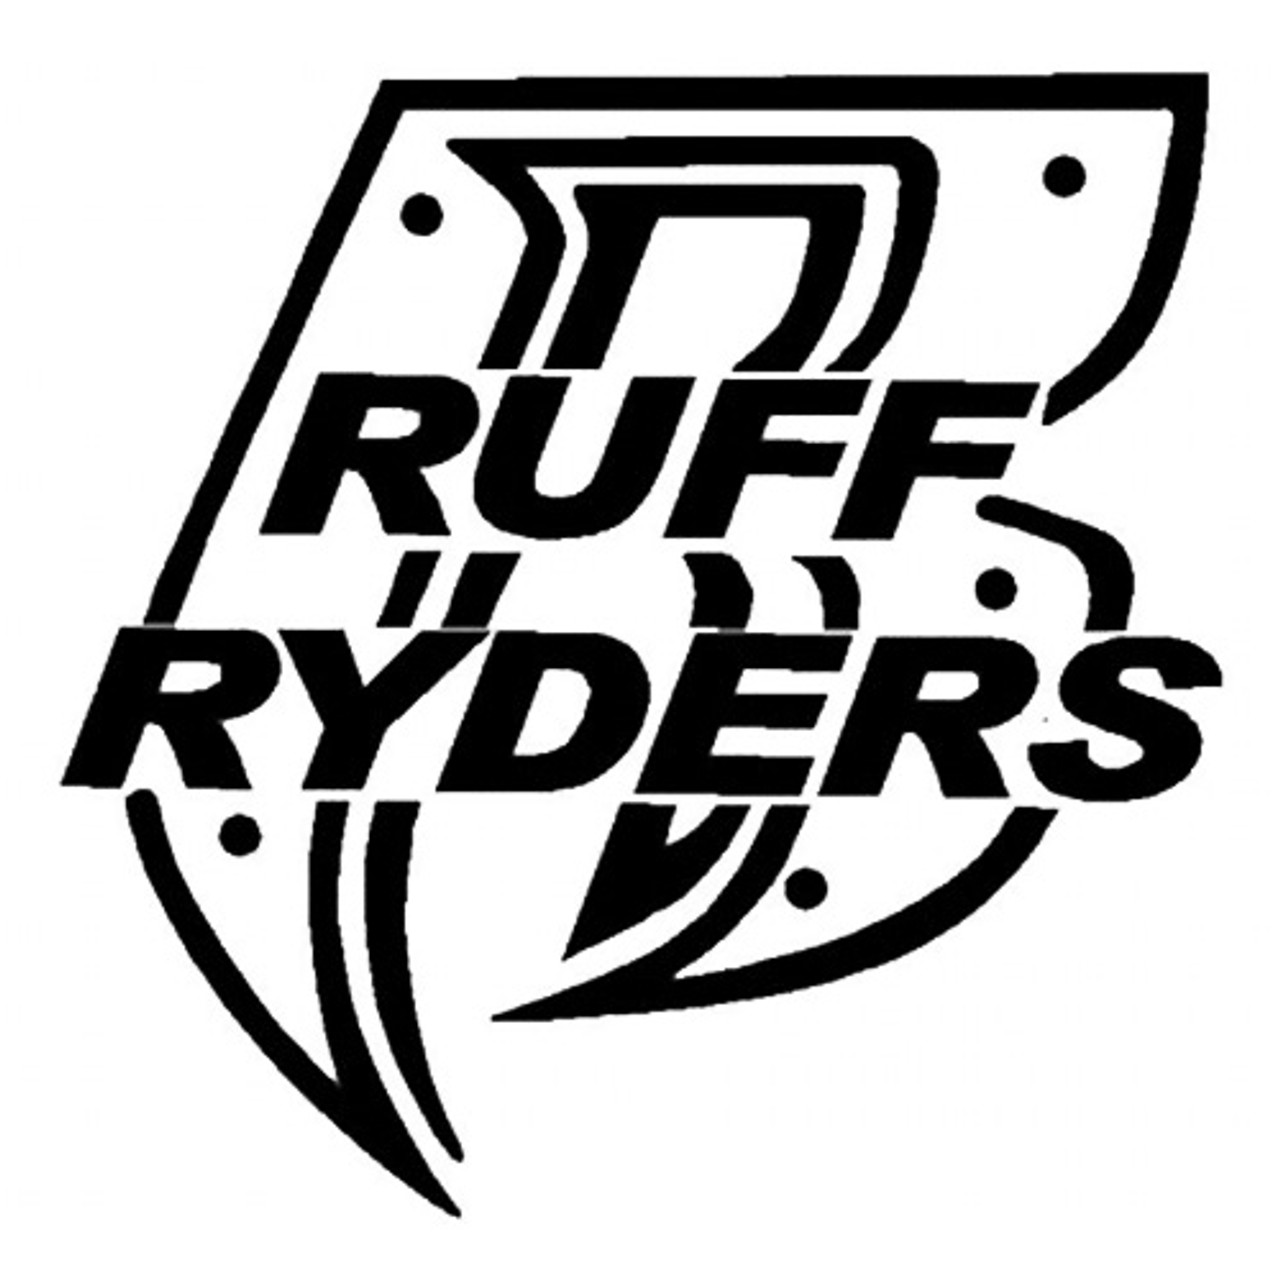 2020 Ruff Ryders Vinyl Decal Sticker Motorcycle Music Car Truck Laptop From Xymy797 3 12 Dhgate Com